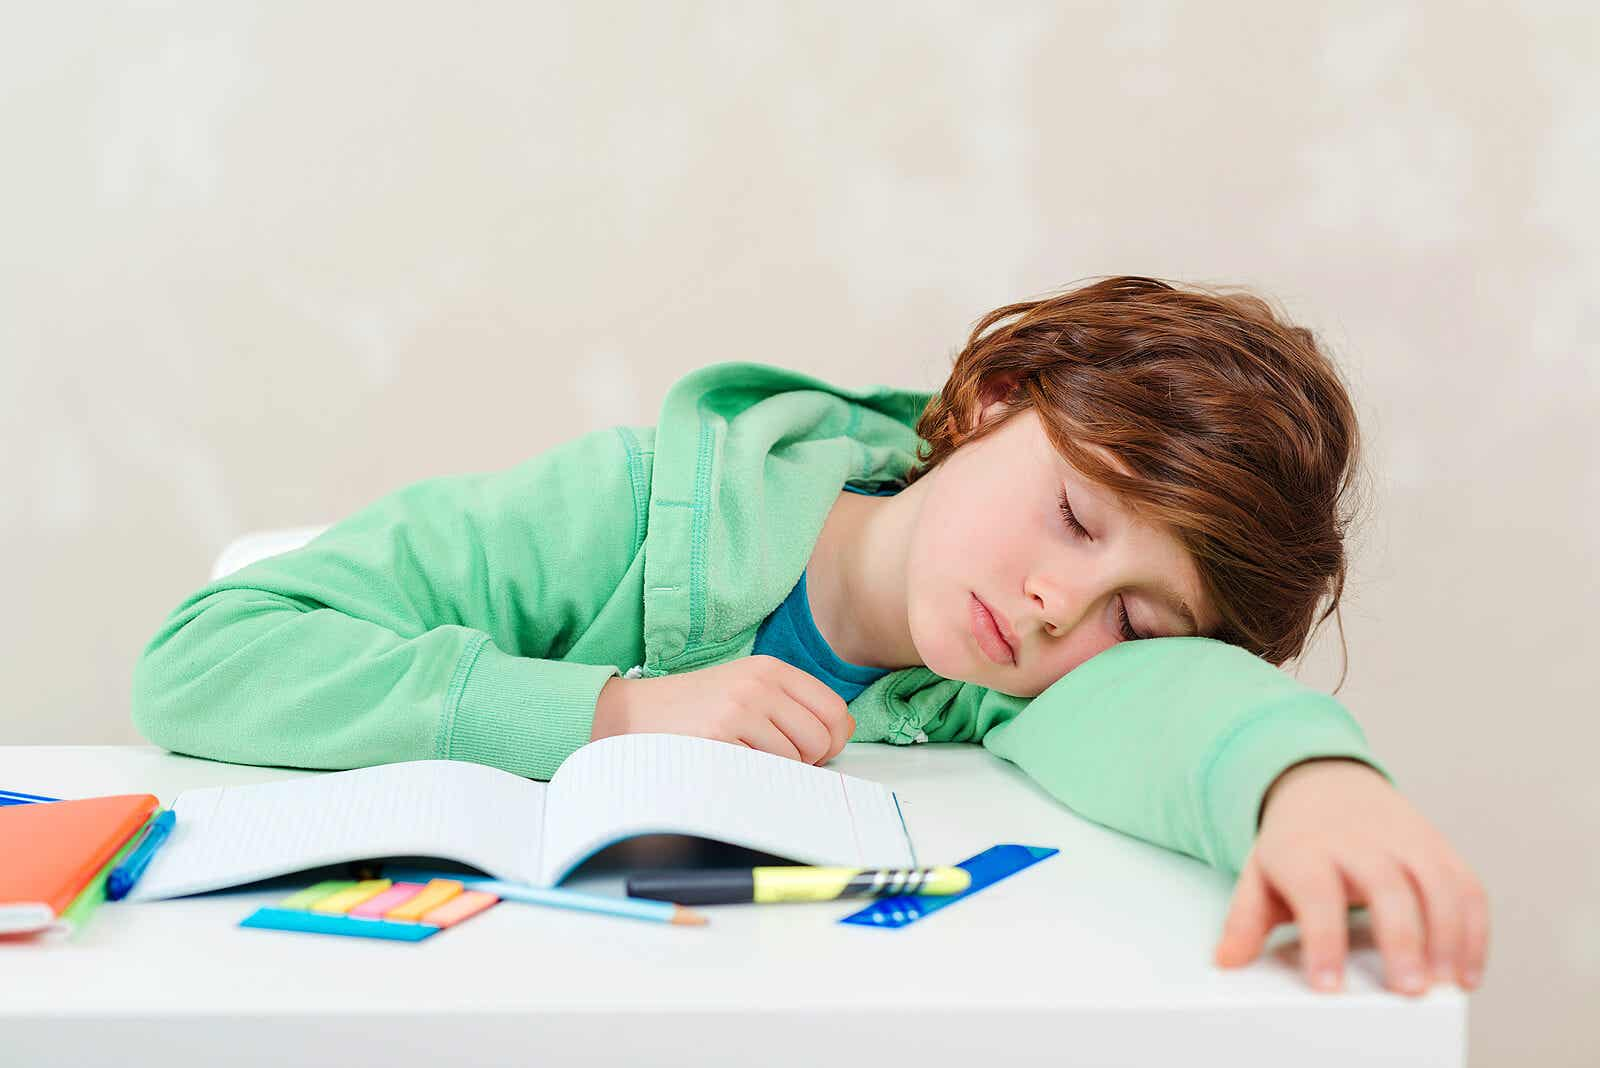 A child who's fallen asleep while studying.